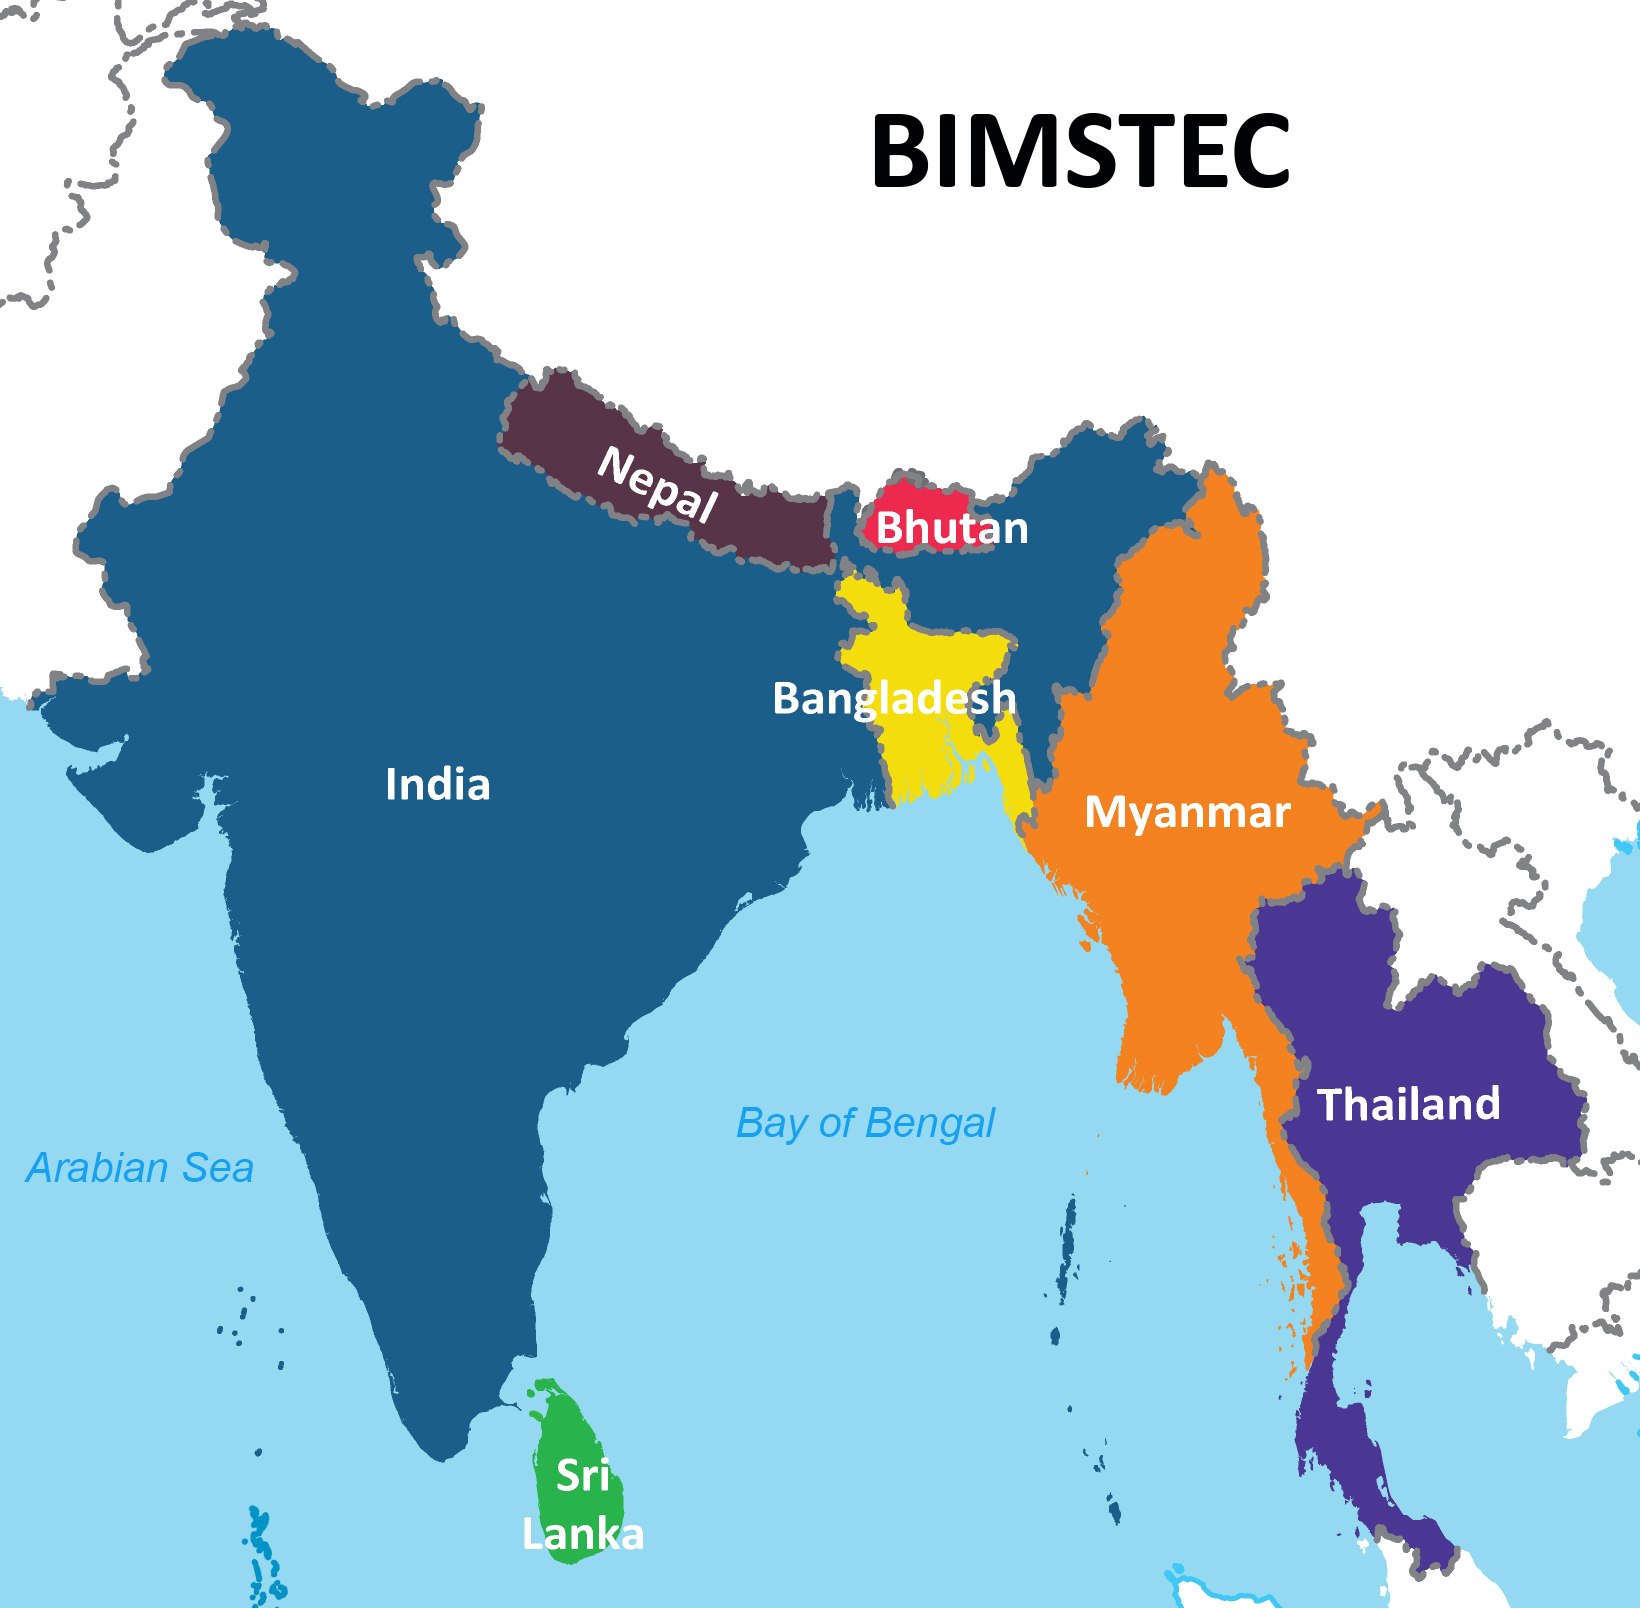 bimstec_map_countries